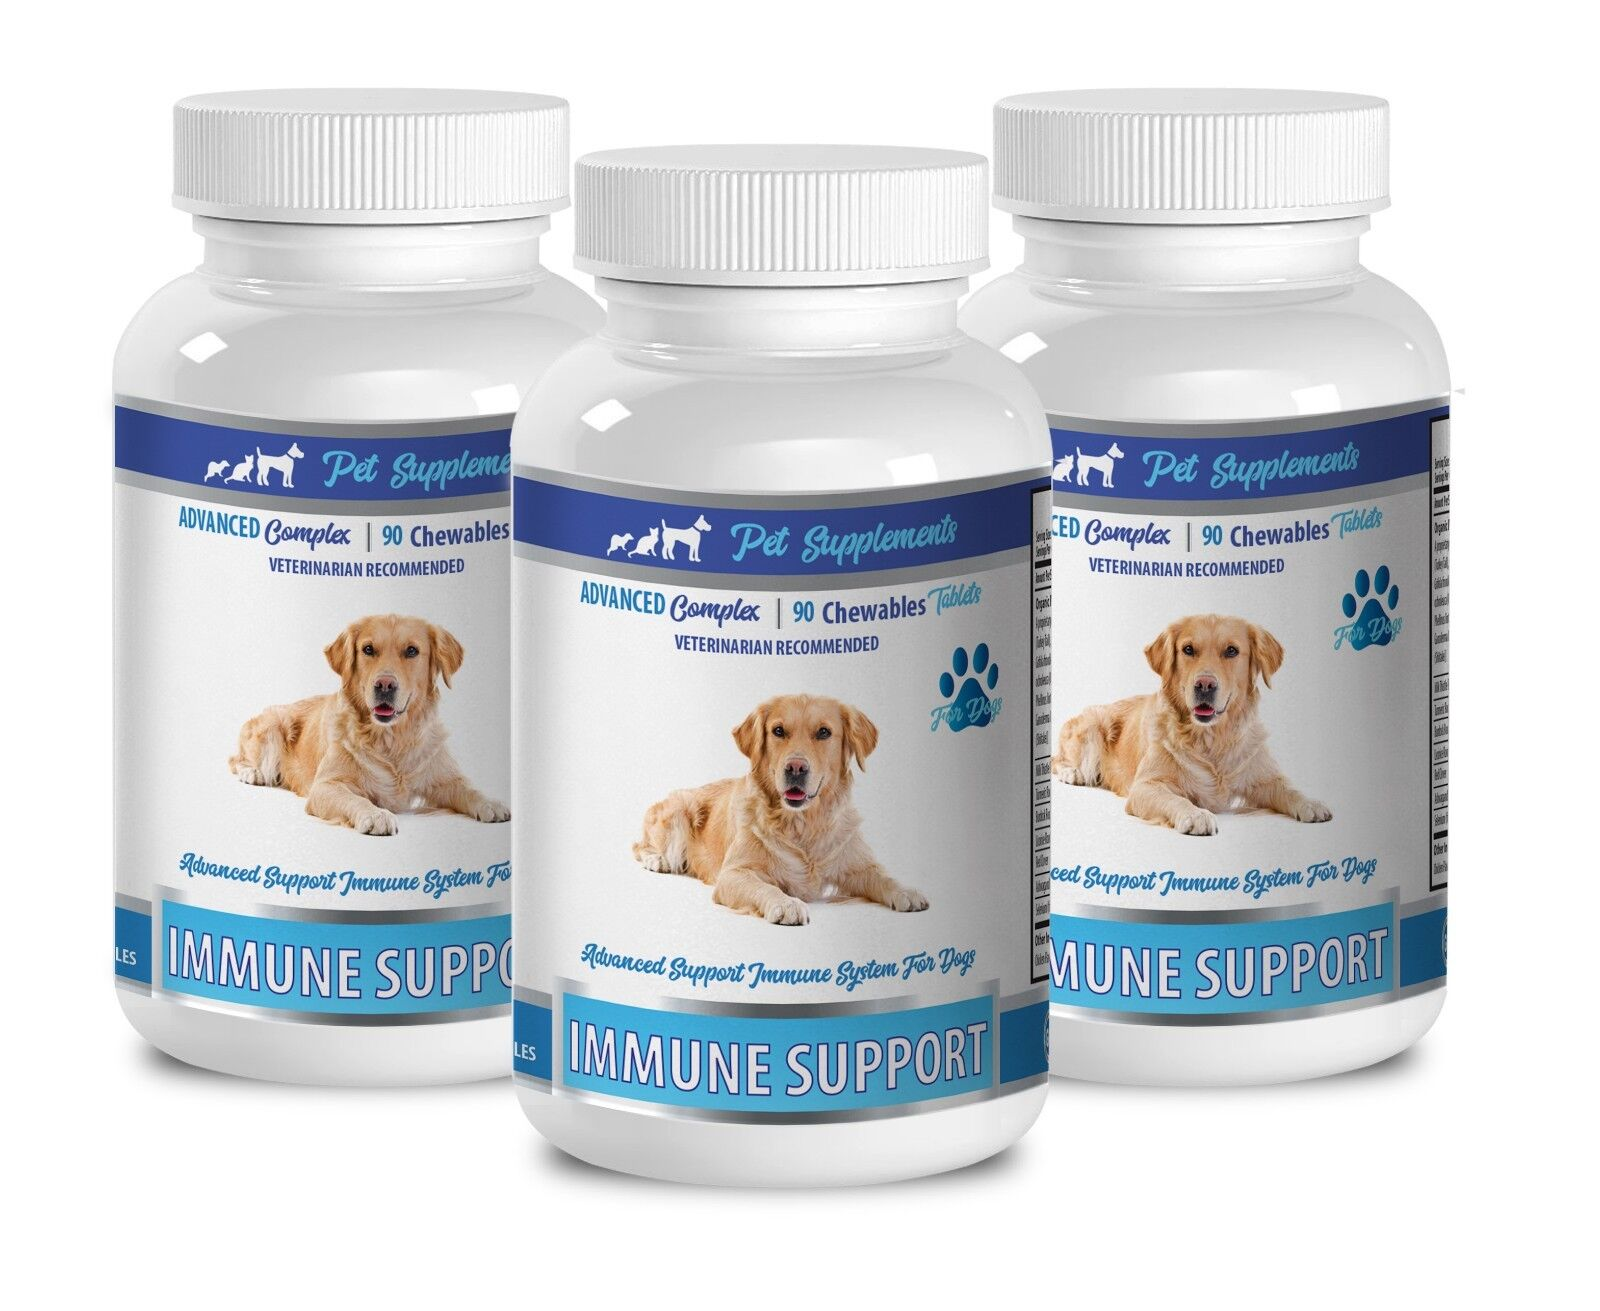 antioxidant for dogs  IMMUNE SUPPORT FOR DOGS 3B  dogs with dry skin